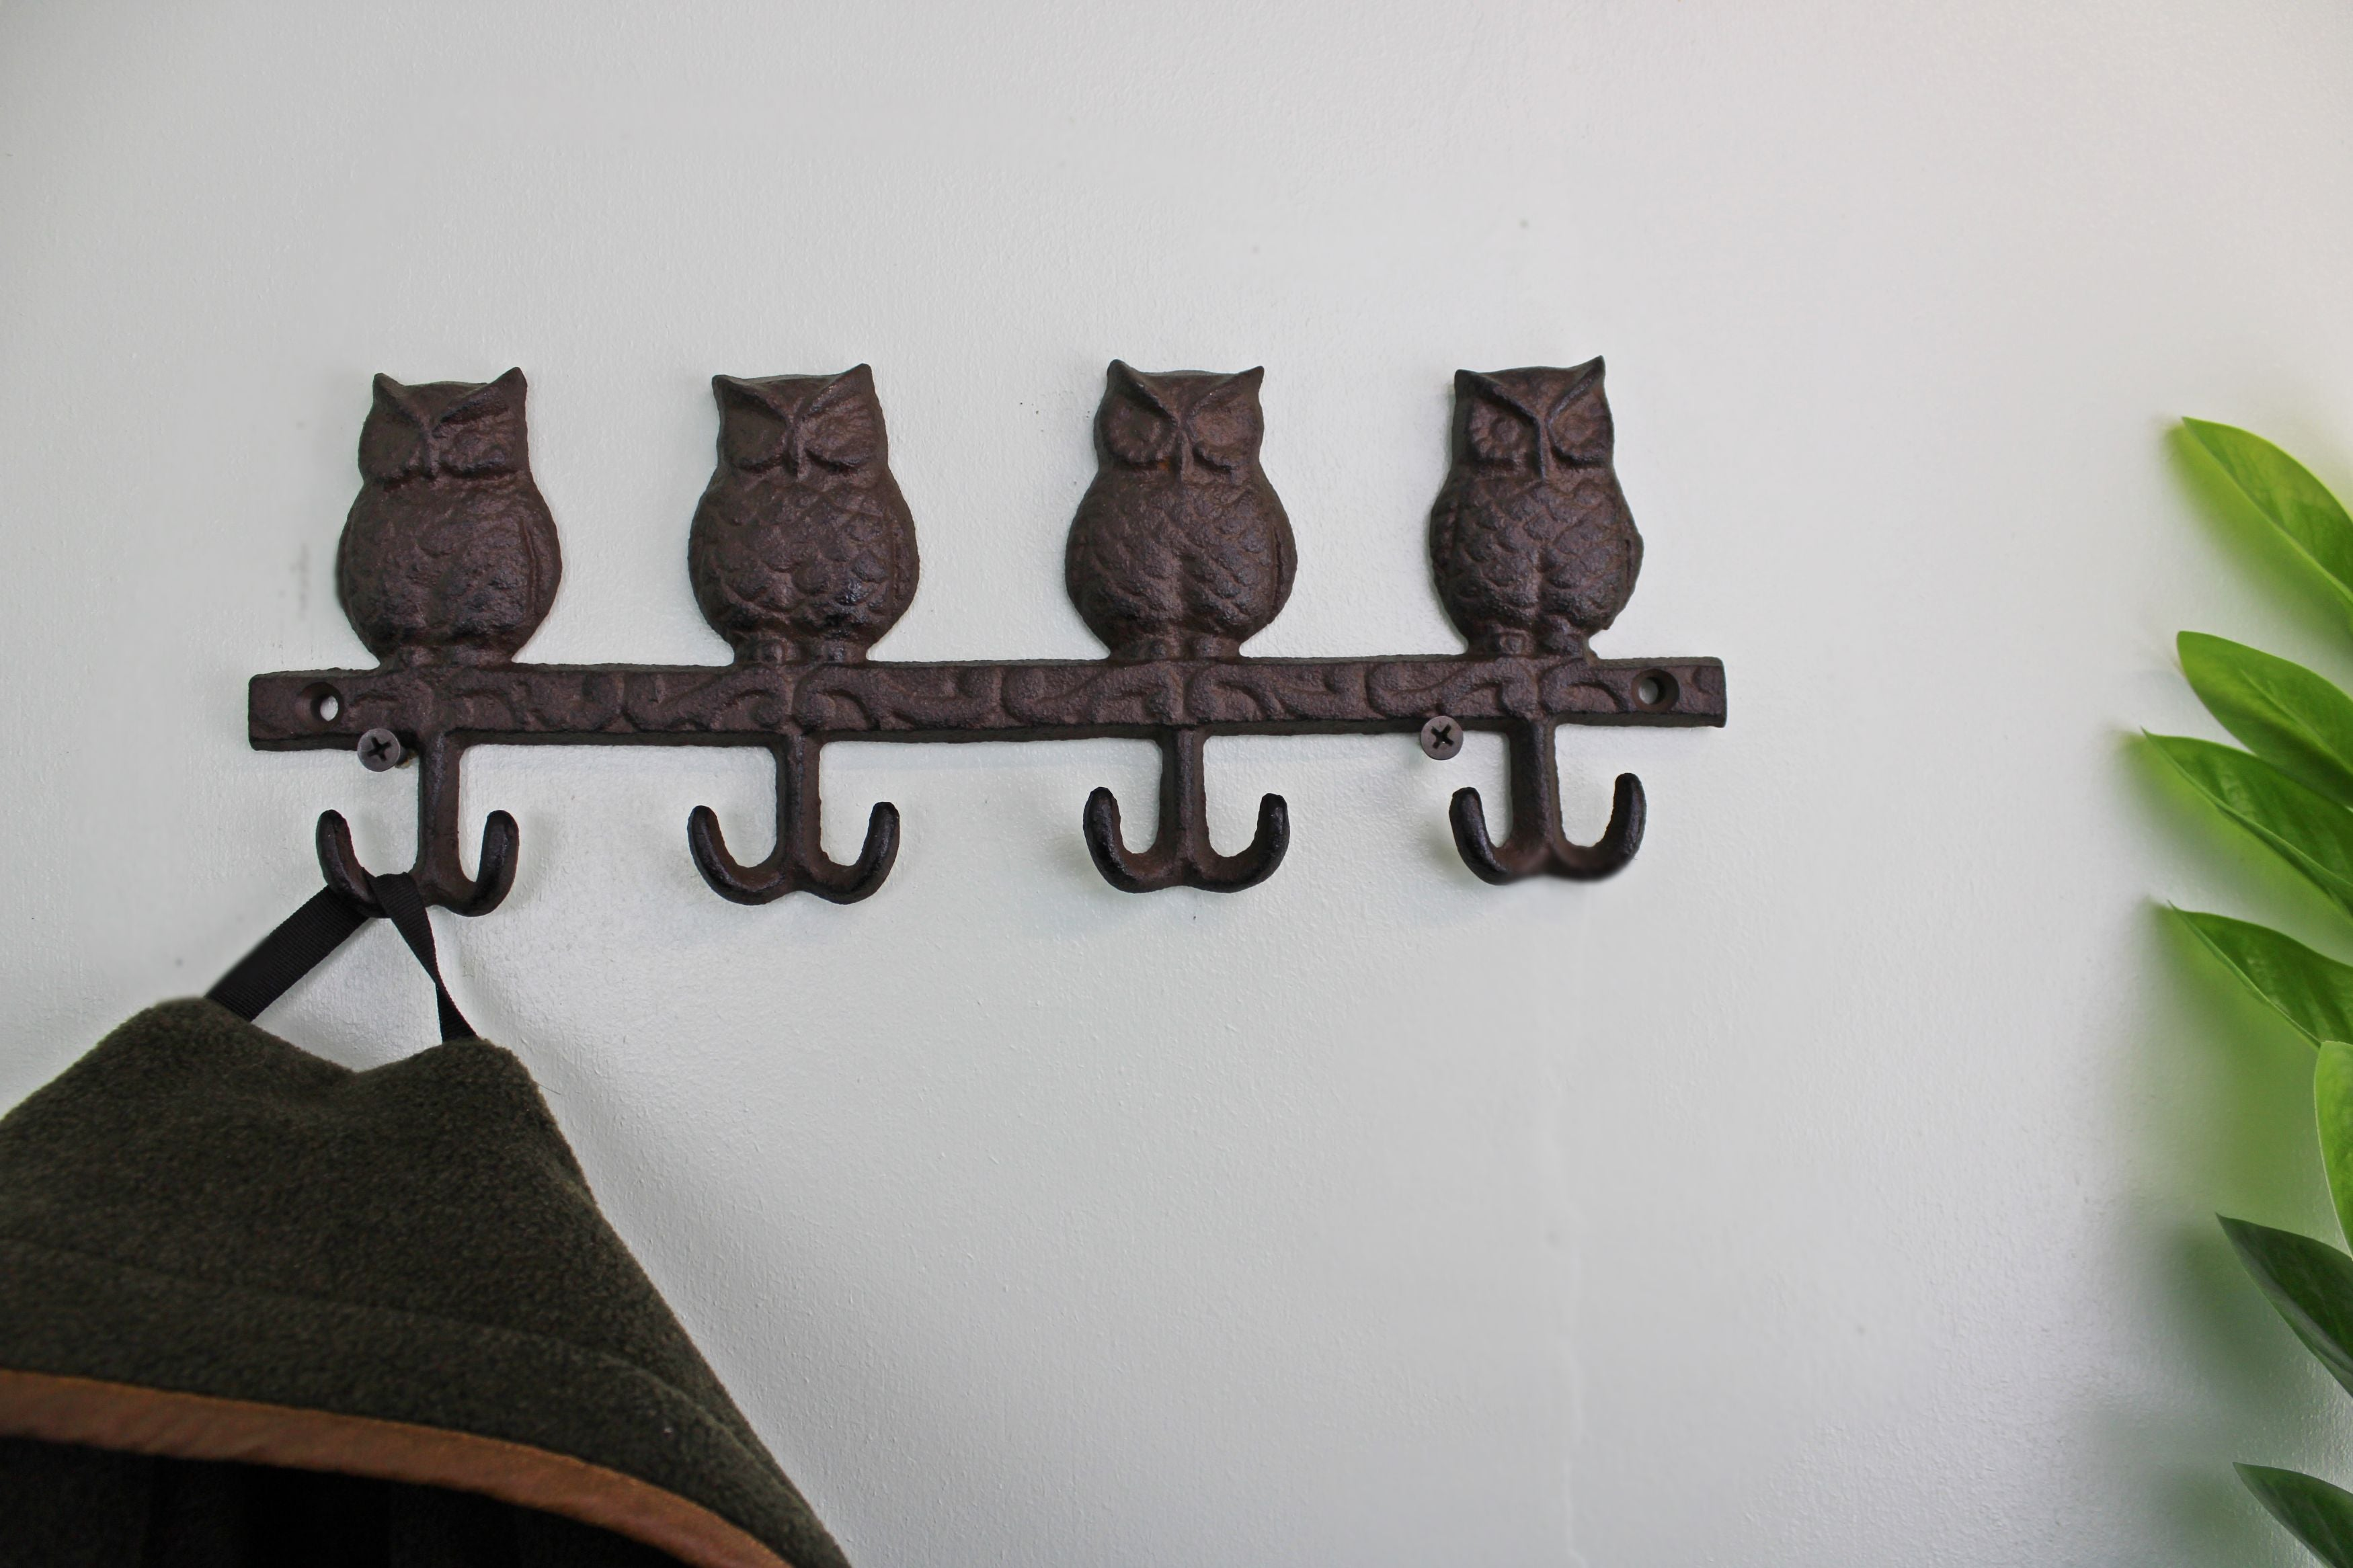 Rustic Cast Iron Wall Hooks, Owls, Clasps & Hooks by Low Cost Gifts